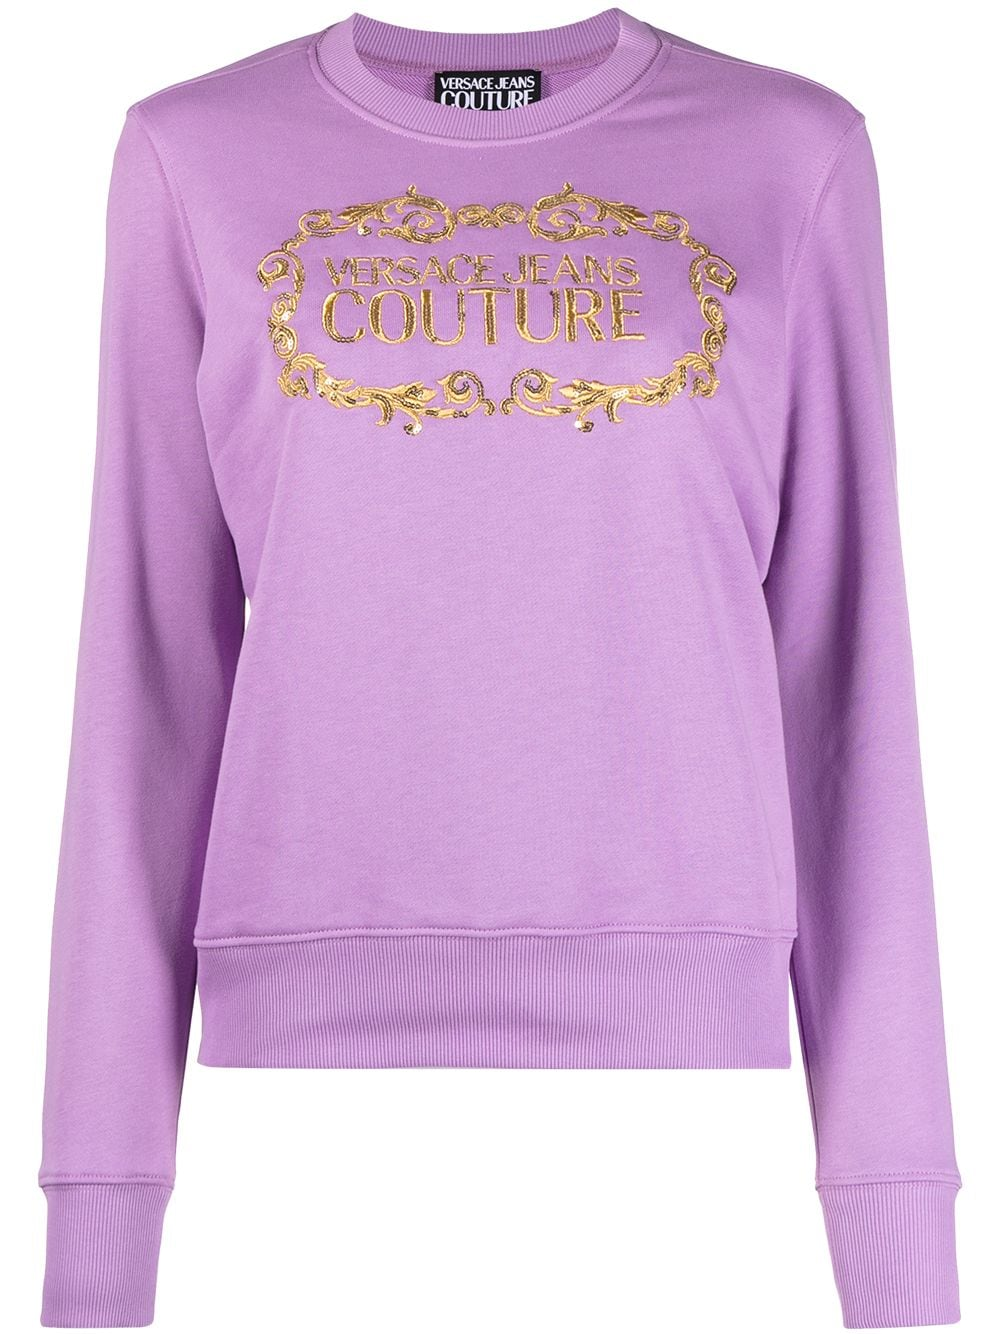 VERSACE JEANS COUTURE |  | B6.HWA7TM.30318317